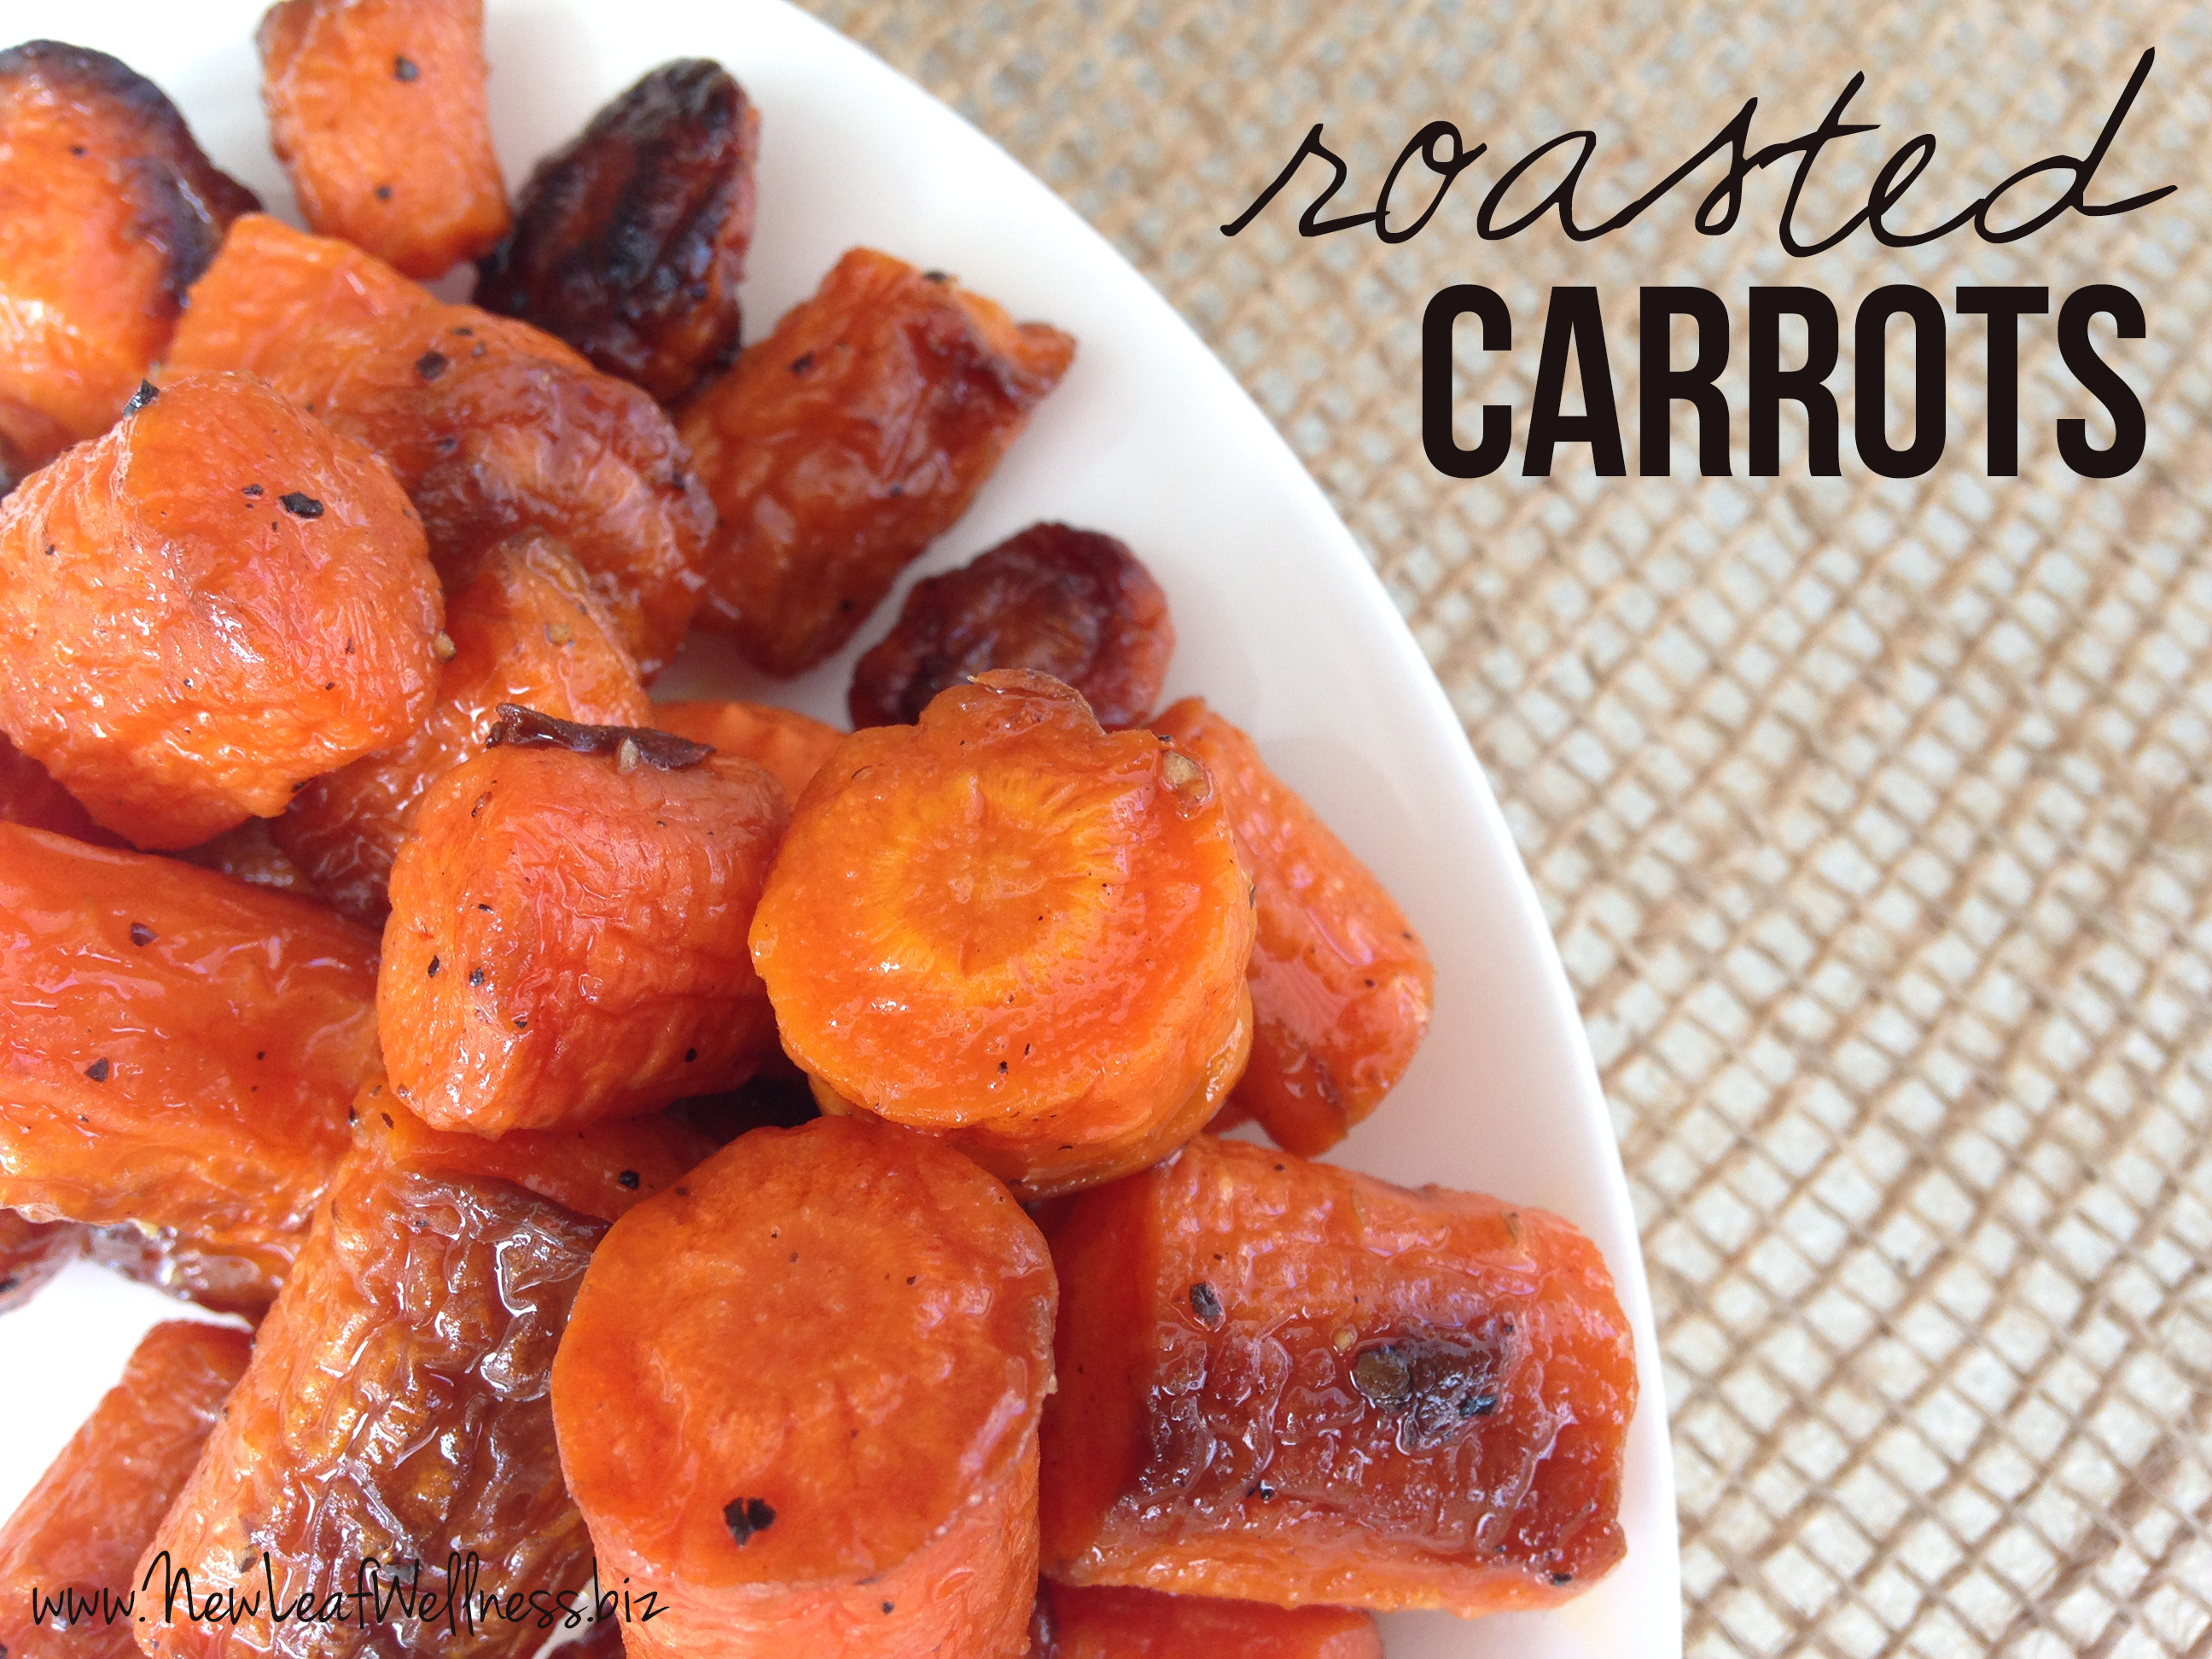 Recipe for Roasted Carrots